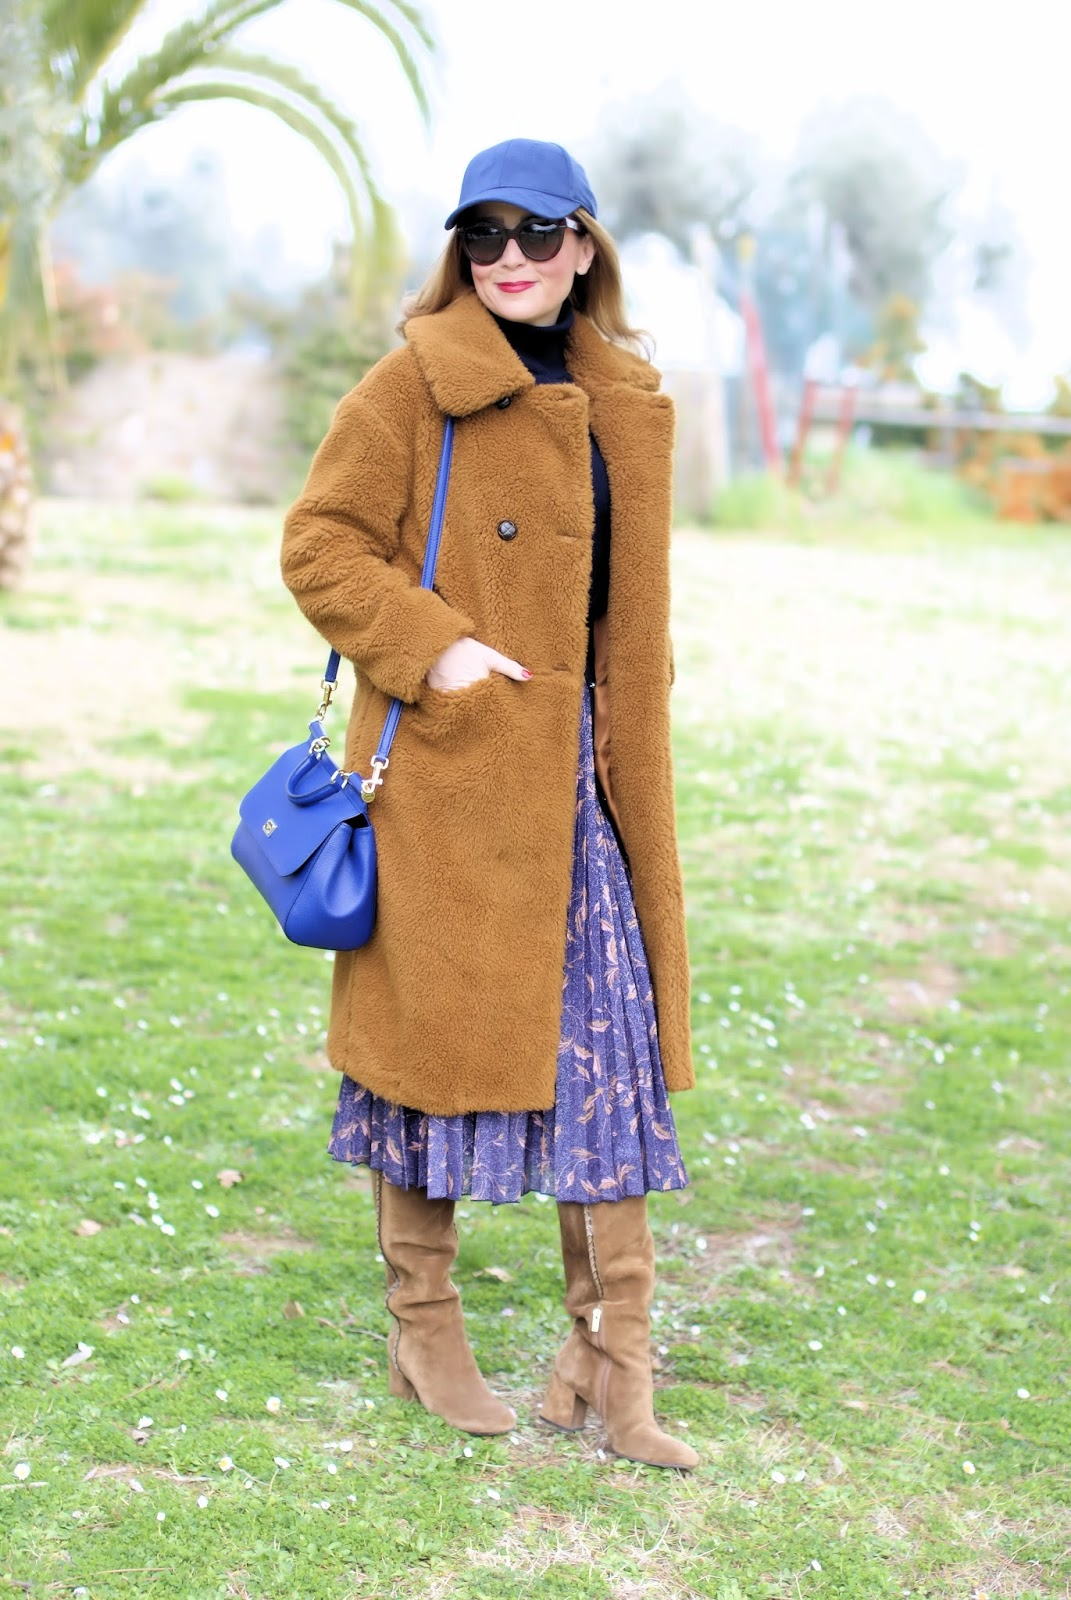 The Teddy Bear Coat cheap version from Topshop on Fashion and Cookies international fashion blog